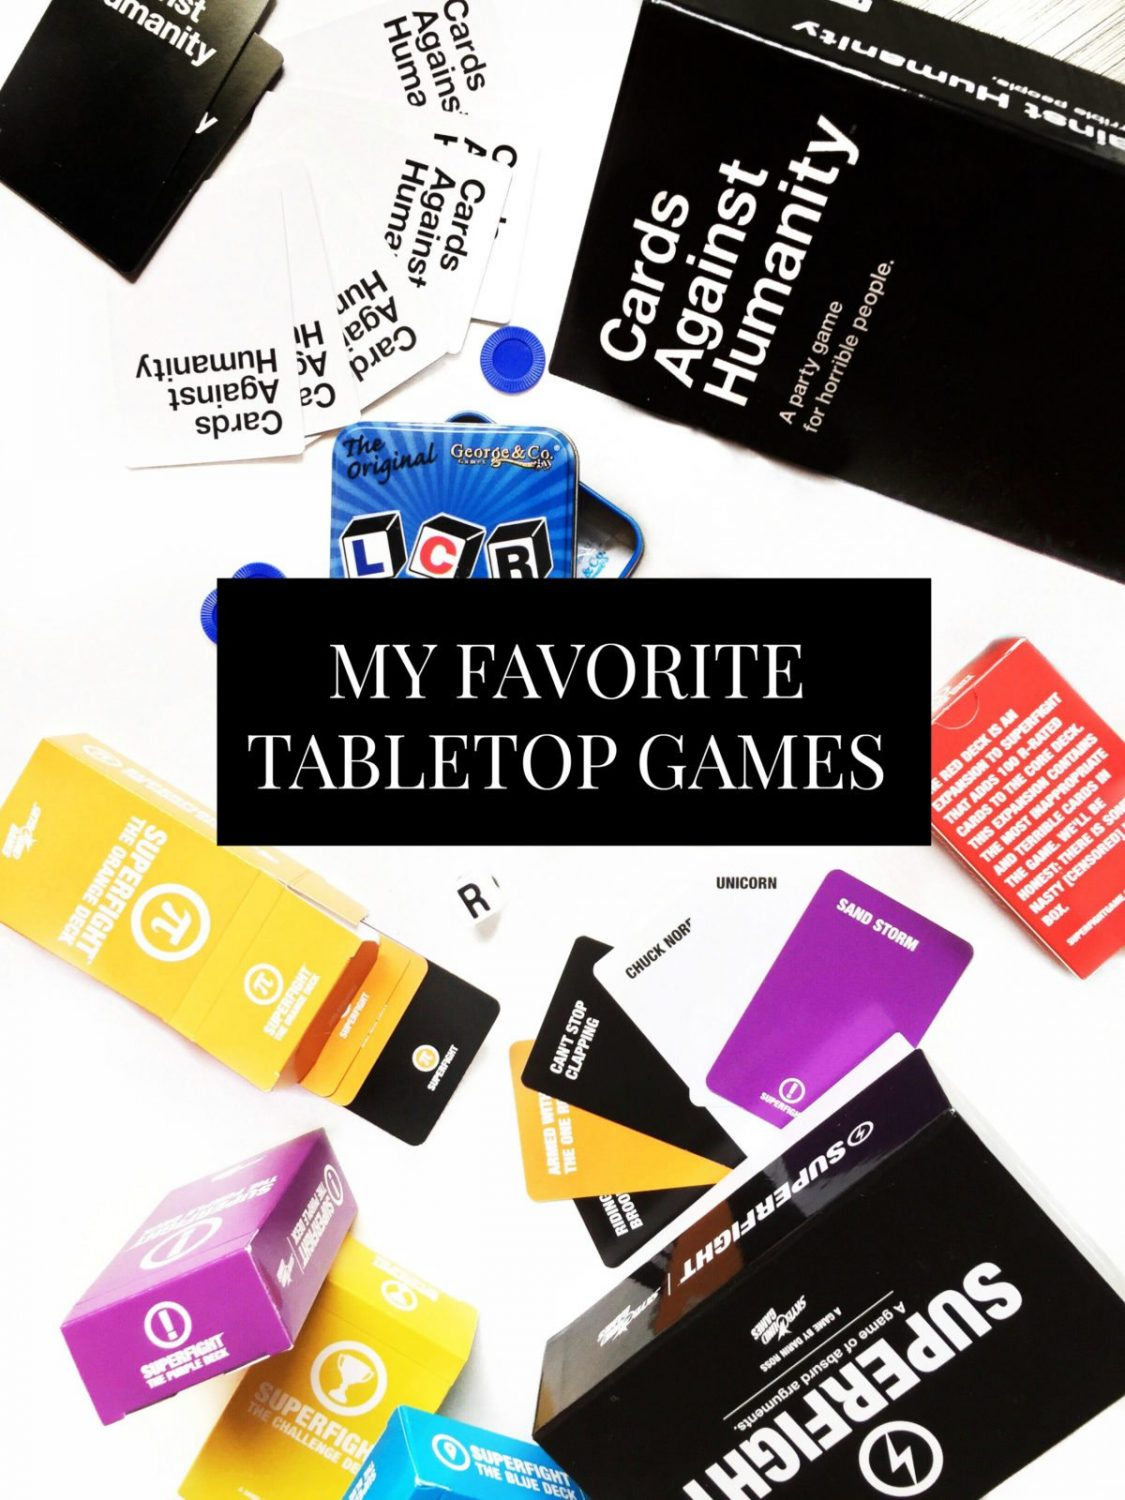 A list of our favorite tabletop games for hosting game night that is geared more to adults who love to play tabletop games. Games include card games, dice games, and board games. Come tell me your favorite game for game night!// www.ElleTalk.com